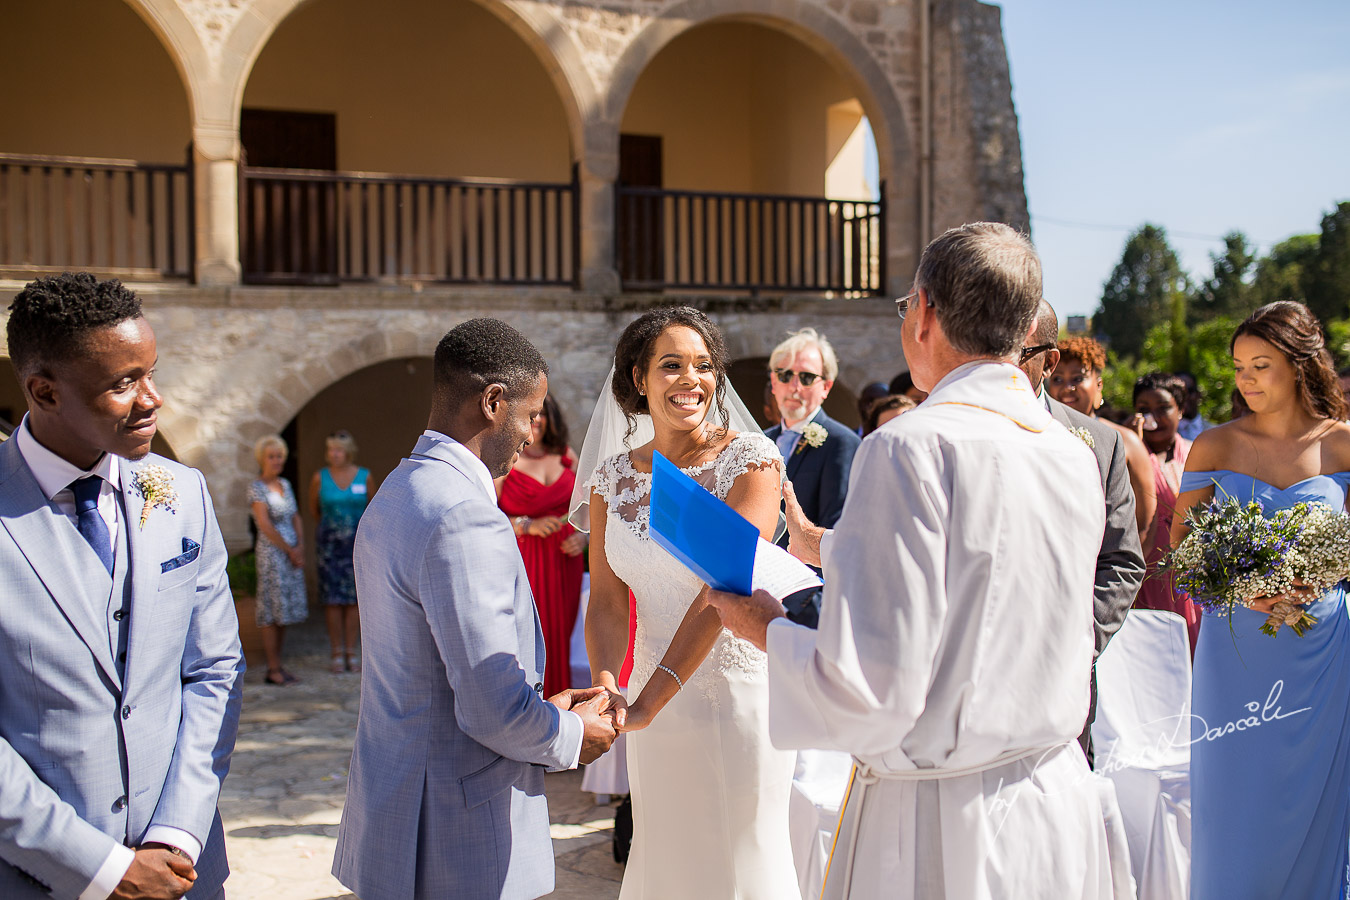 Happy moments with the bride and groom captured at a wedding at Minthis Hills in Cyprus, by Cristian Dascalu.